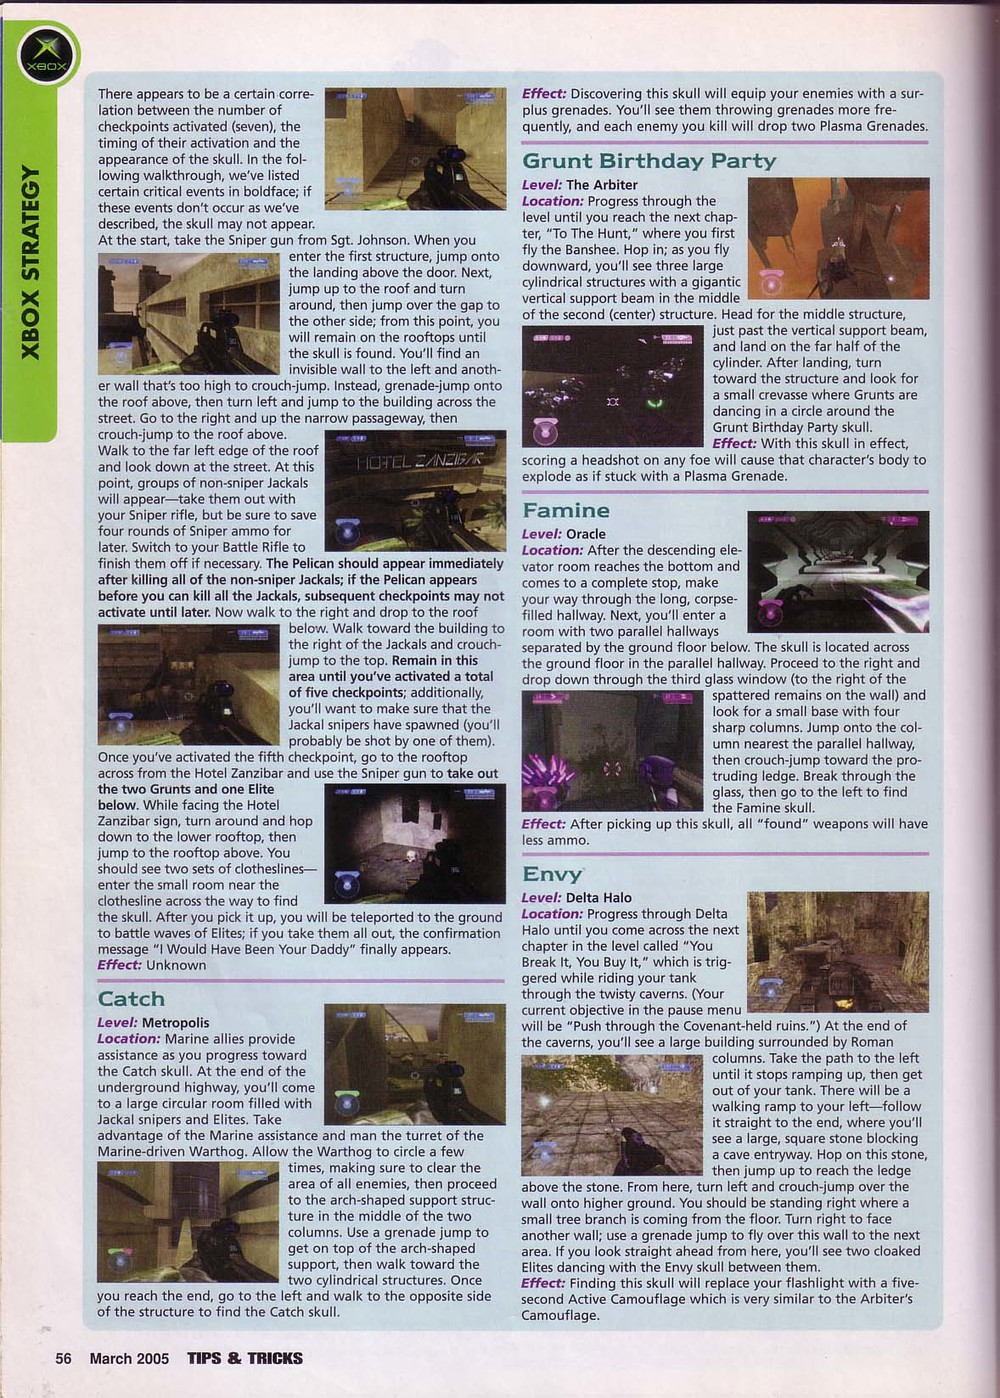 TipsandTricks_March_2005_Halo_pg2_Strategy.jpg